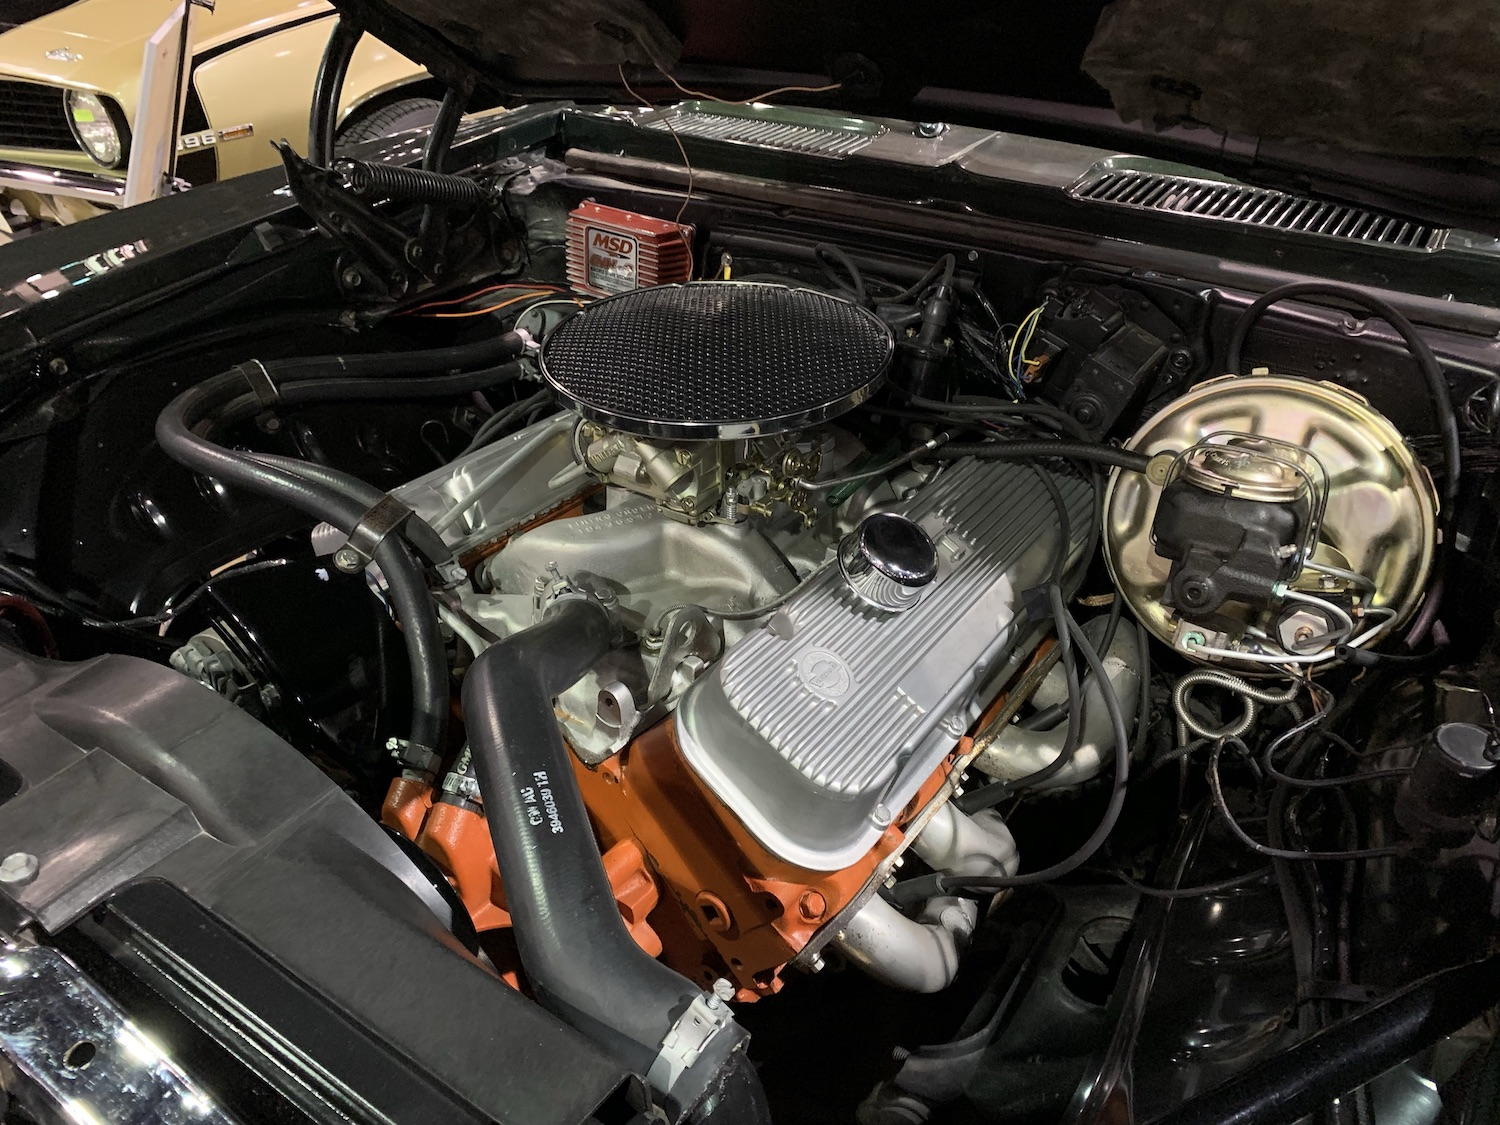 1969 Camaro COPO 427 engine